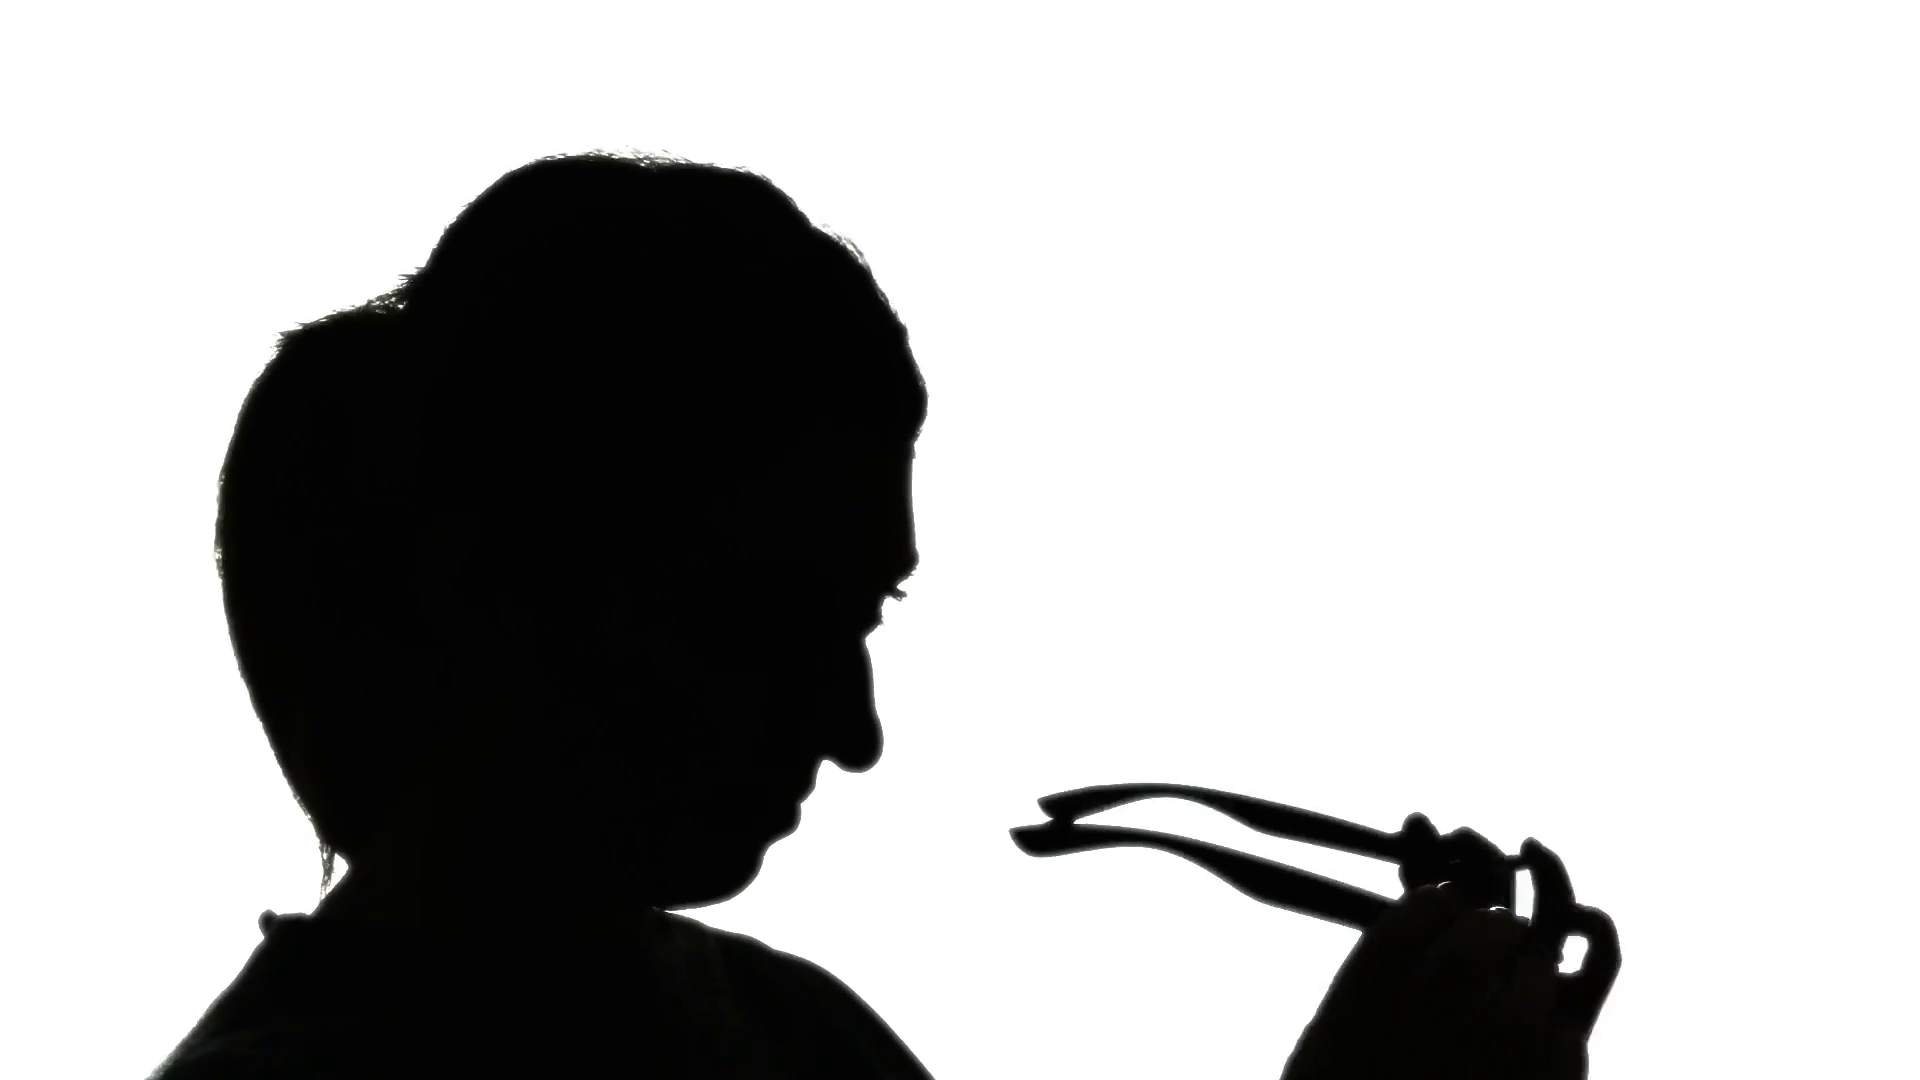 1920x1080 Silhouette Woman Wearing Glasses 3. Silhouette Shot Of A Woman